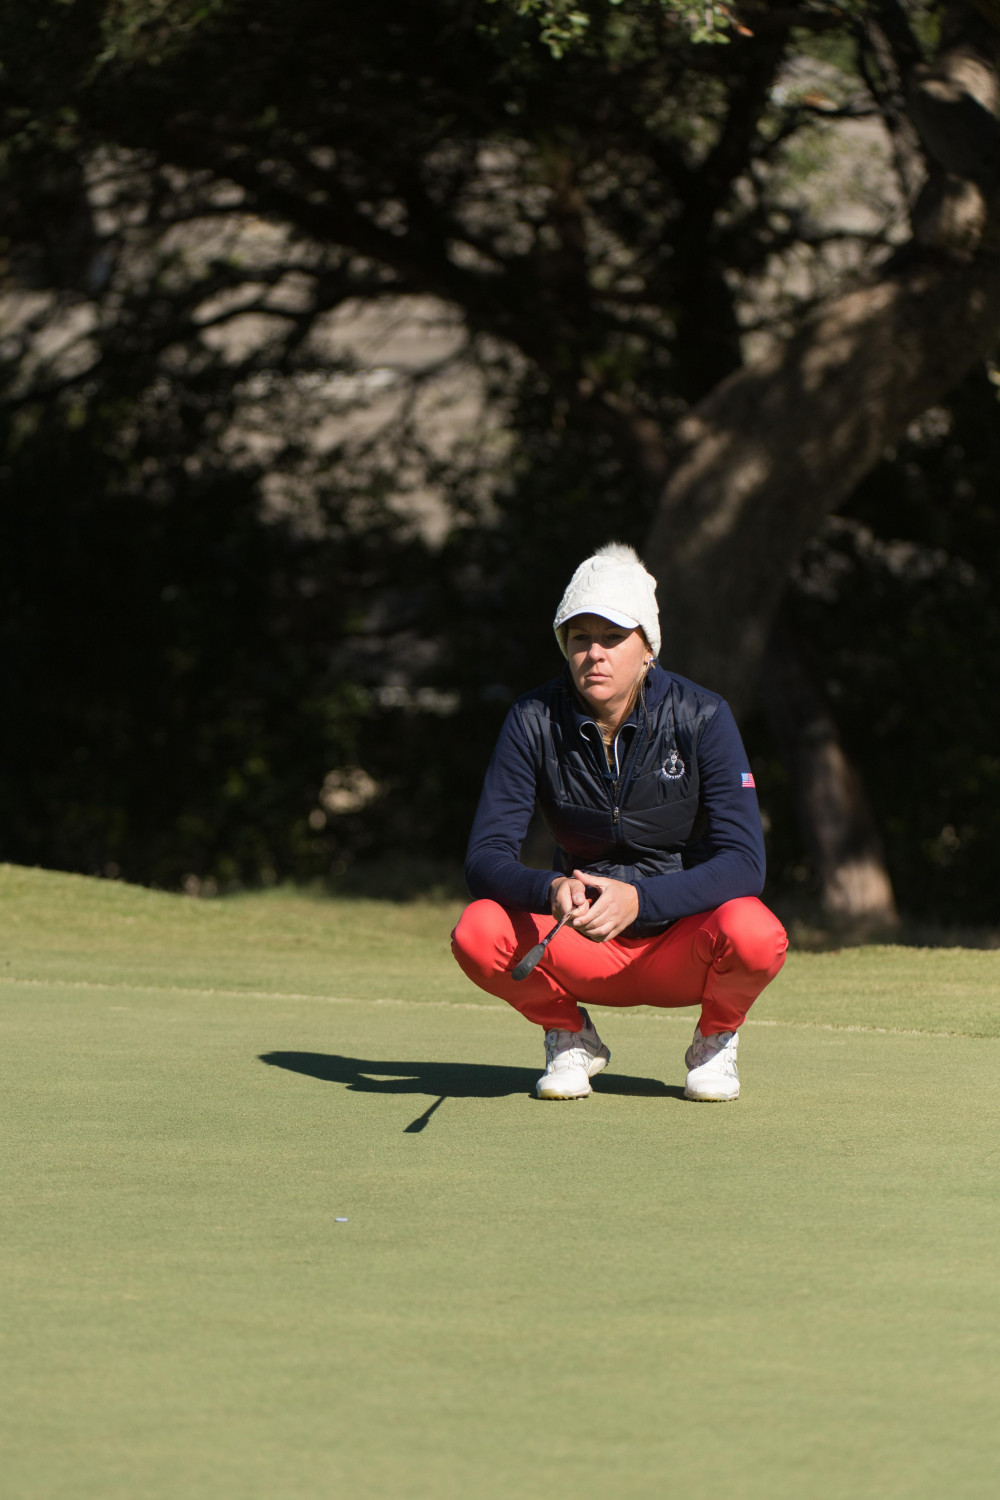 Represented the United States in the inaugural Women's PGA Cup, an international biennial team competition for club professionals.